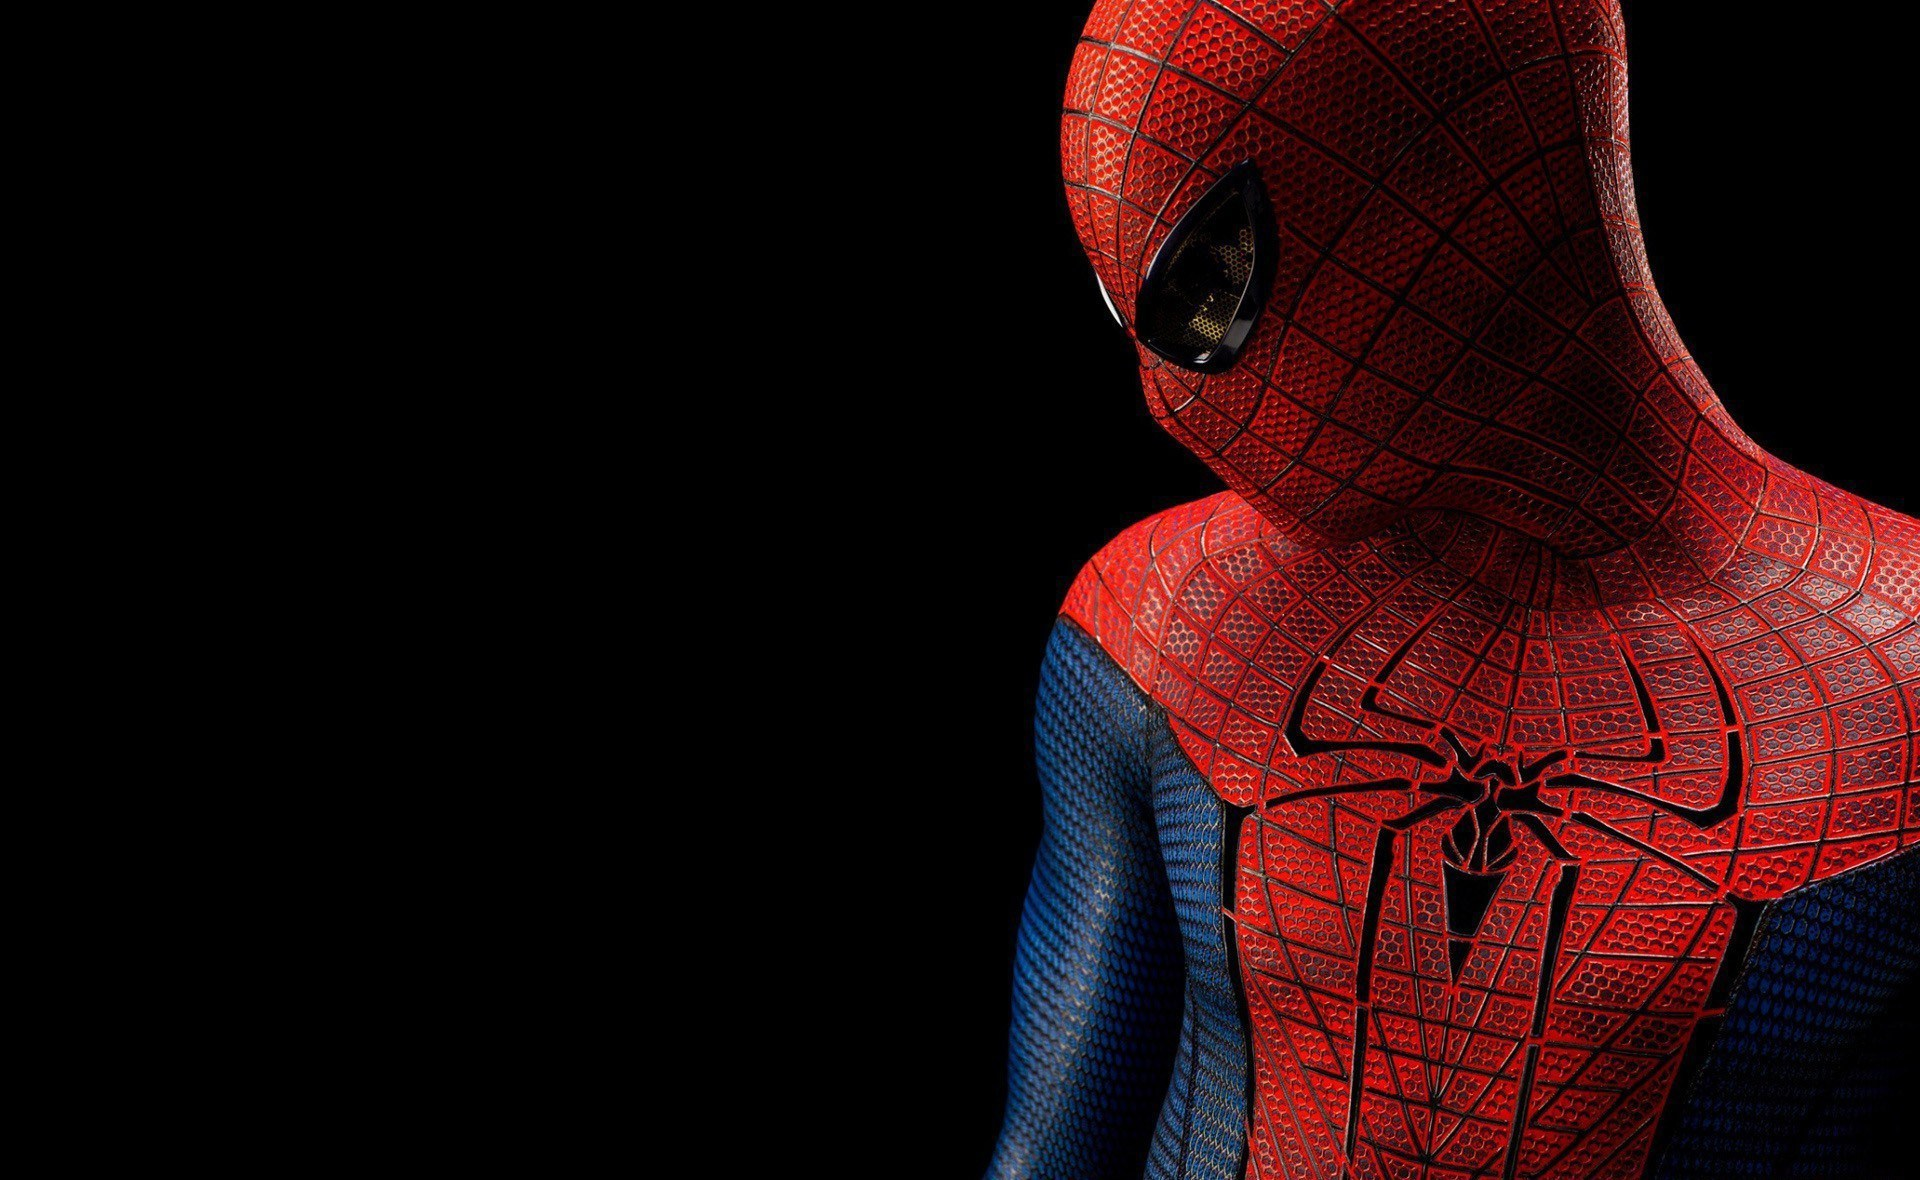 Black background Spider Man wallpapers and images   wallpapers 1920x1180